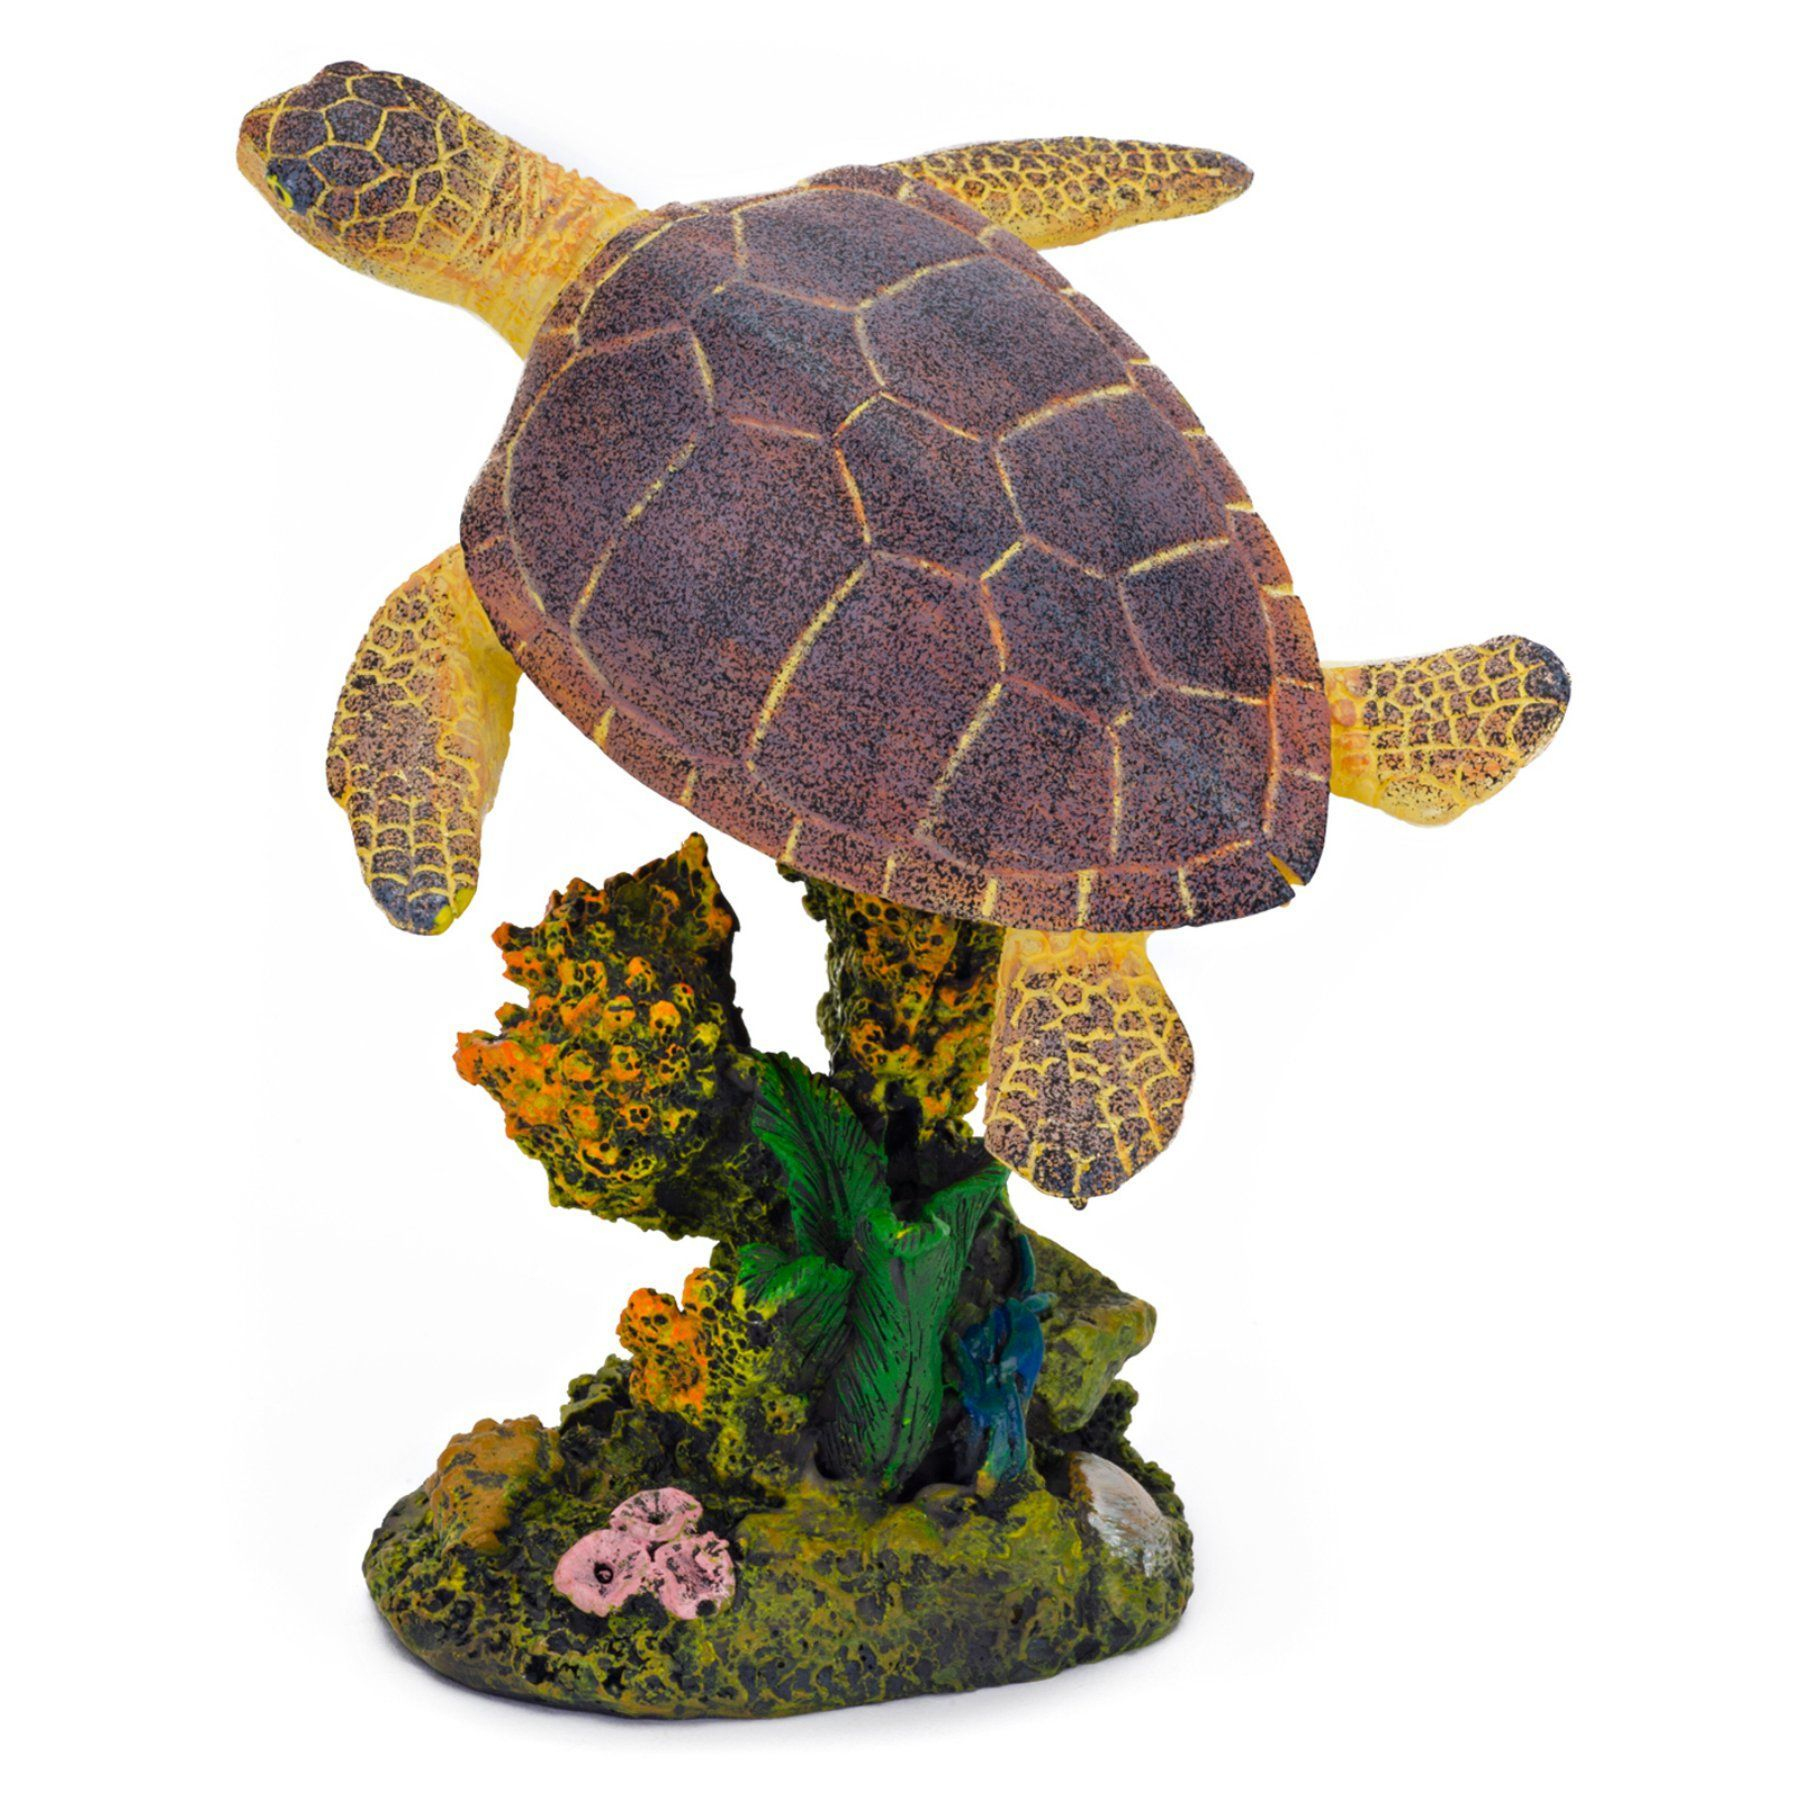 Penn Plax Swimming Sea Turtle Aquarium Figure - Medium - 3L x 4.5H in. - RR1107